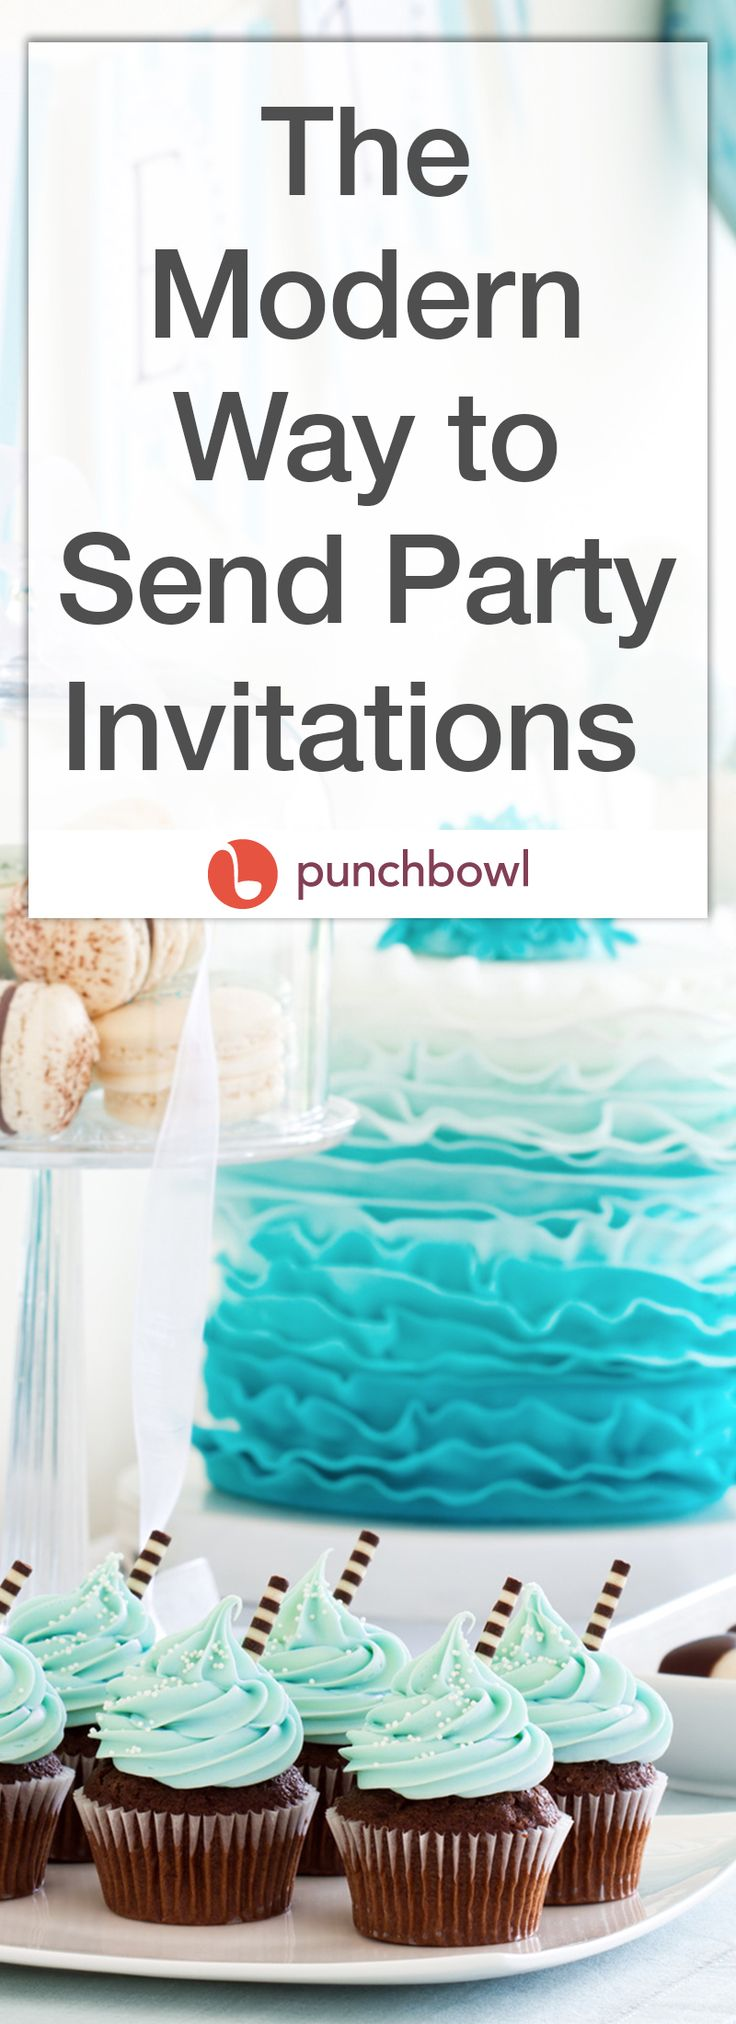 Paper invites are too formal, and emails are too casual. Get it just right with online invitations from Punchbowl. We've got everything you need for that birthday party.    http://www.punchbowl.com/online-invitations/category/47?utm_source=Pinterest&utm_medium=42.1P